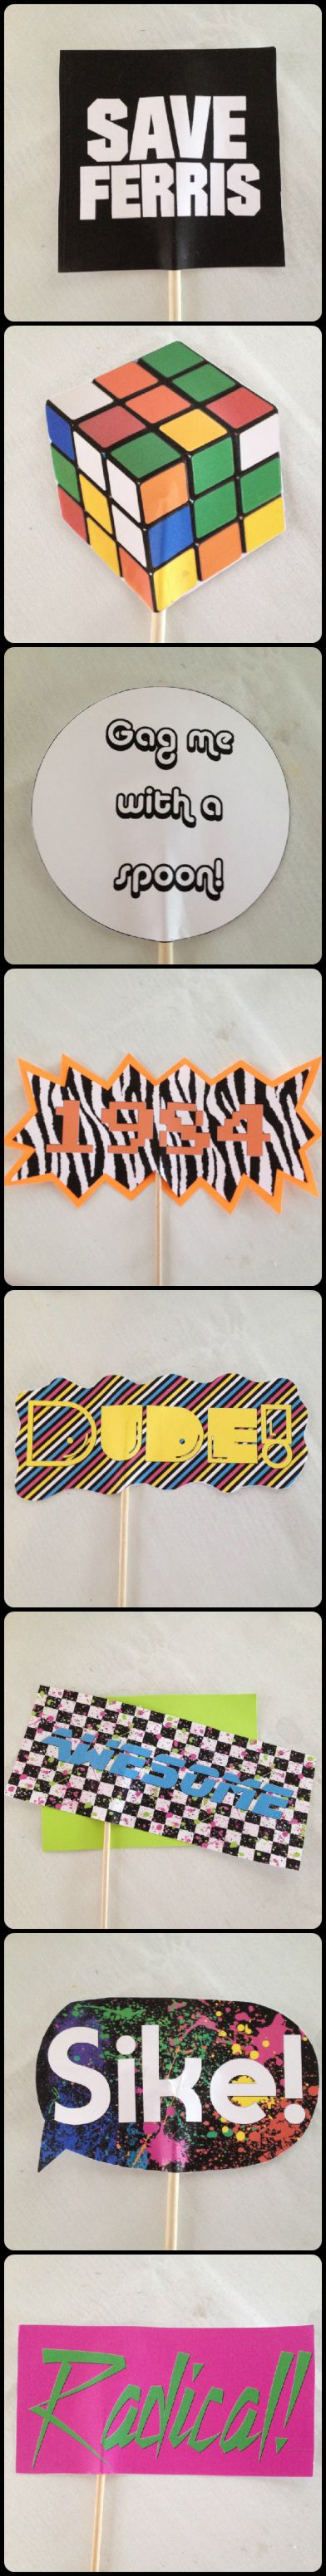 80s themed 30th Birthday Party - Free Printable: Photobooth Signs of 80s Phrases  sometimeskatie.wordpress.com